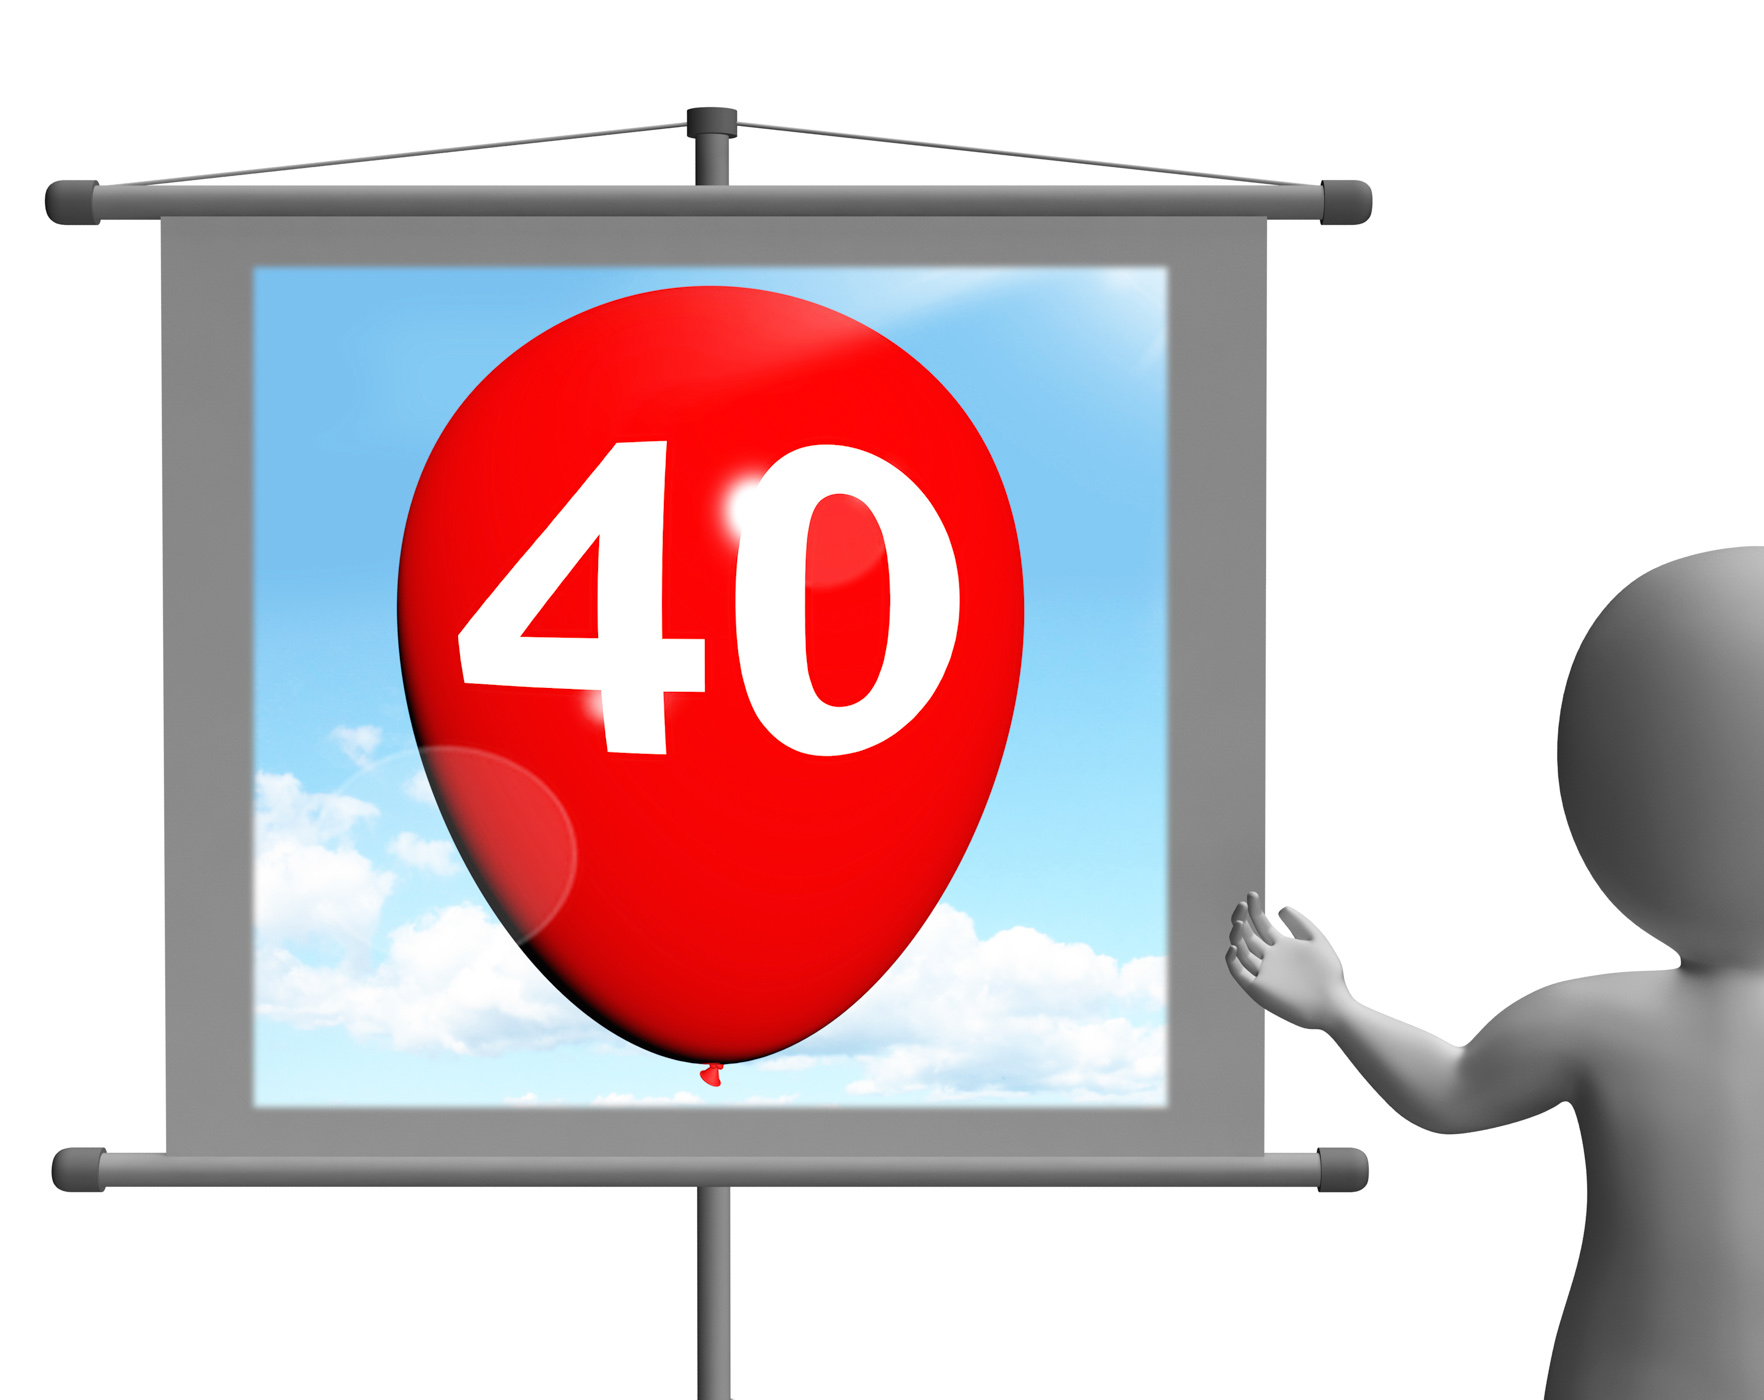 Balloon Shows Fortieth Happy Birthday Celebration, 40, 40th, Adult, Adulthood, HQ Photo